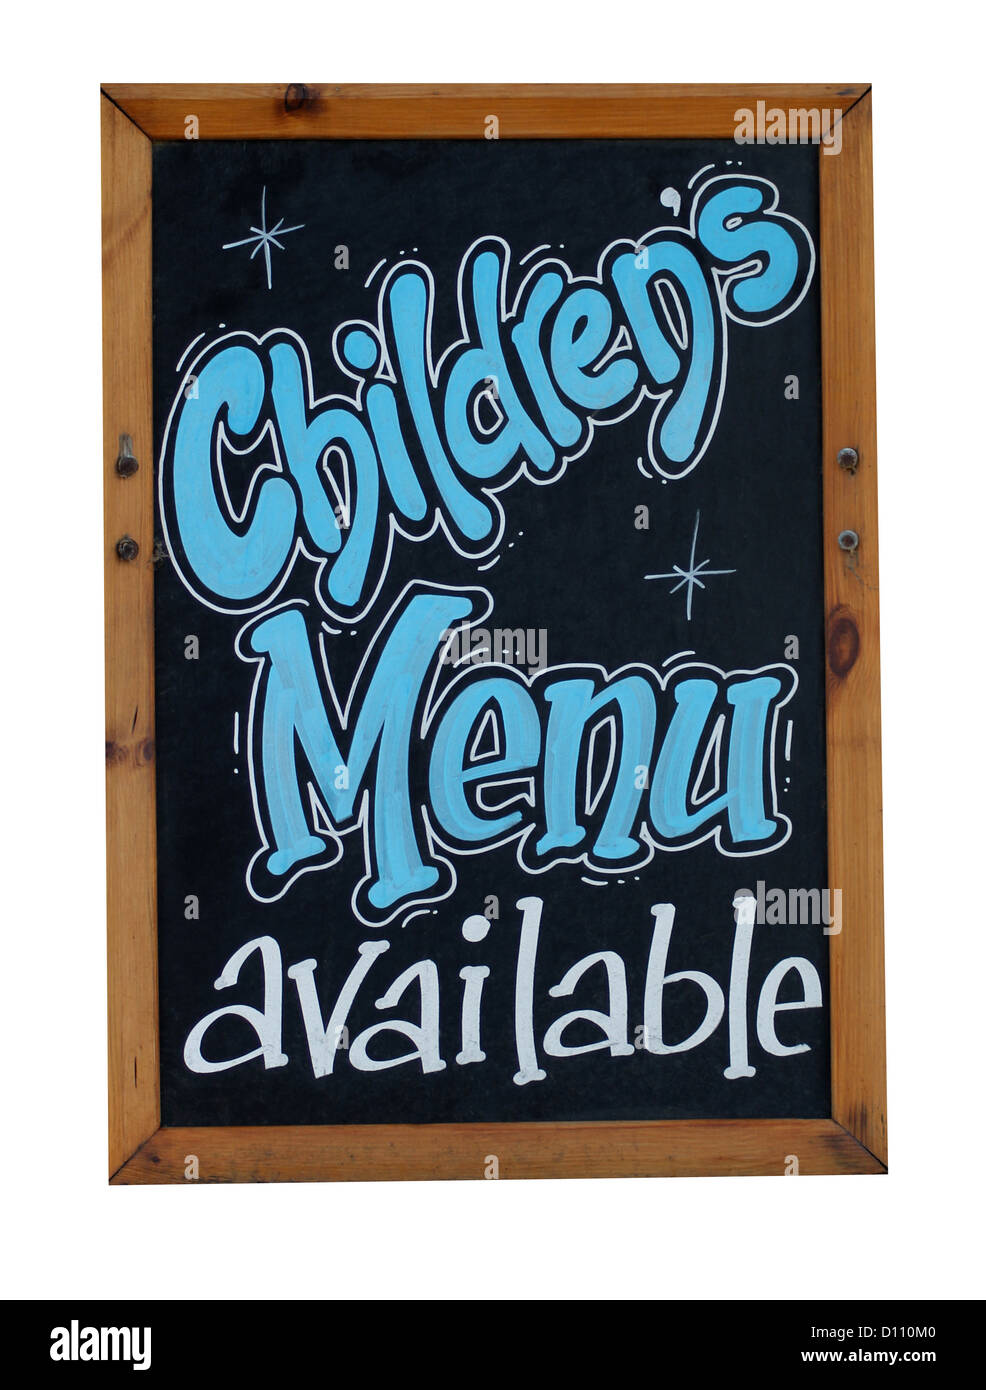 Menu Eatery Stock Photos & Menu Eatery Stock Images - Alamy